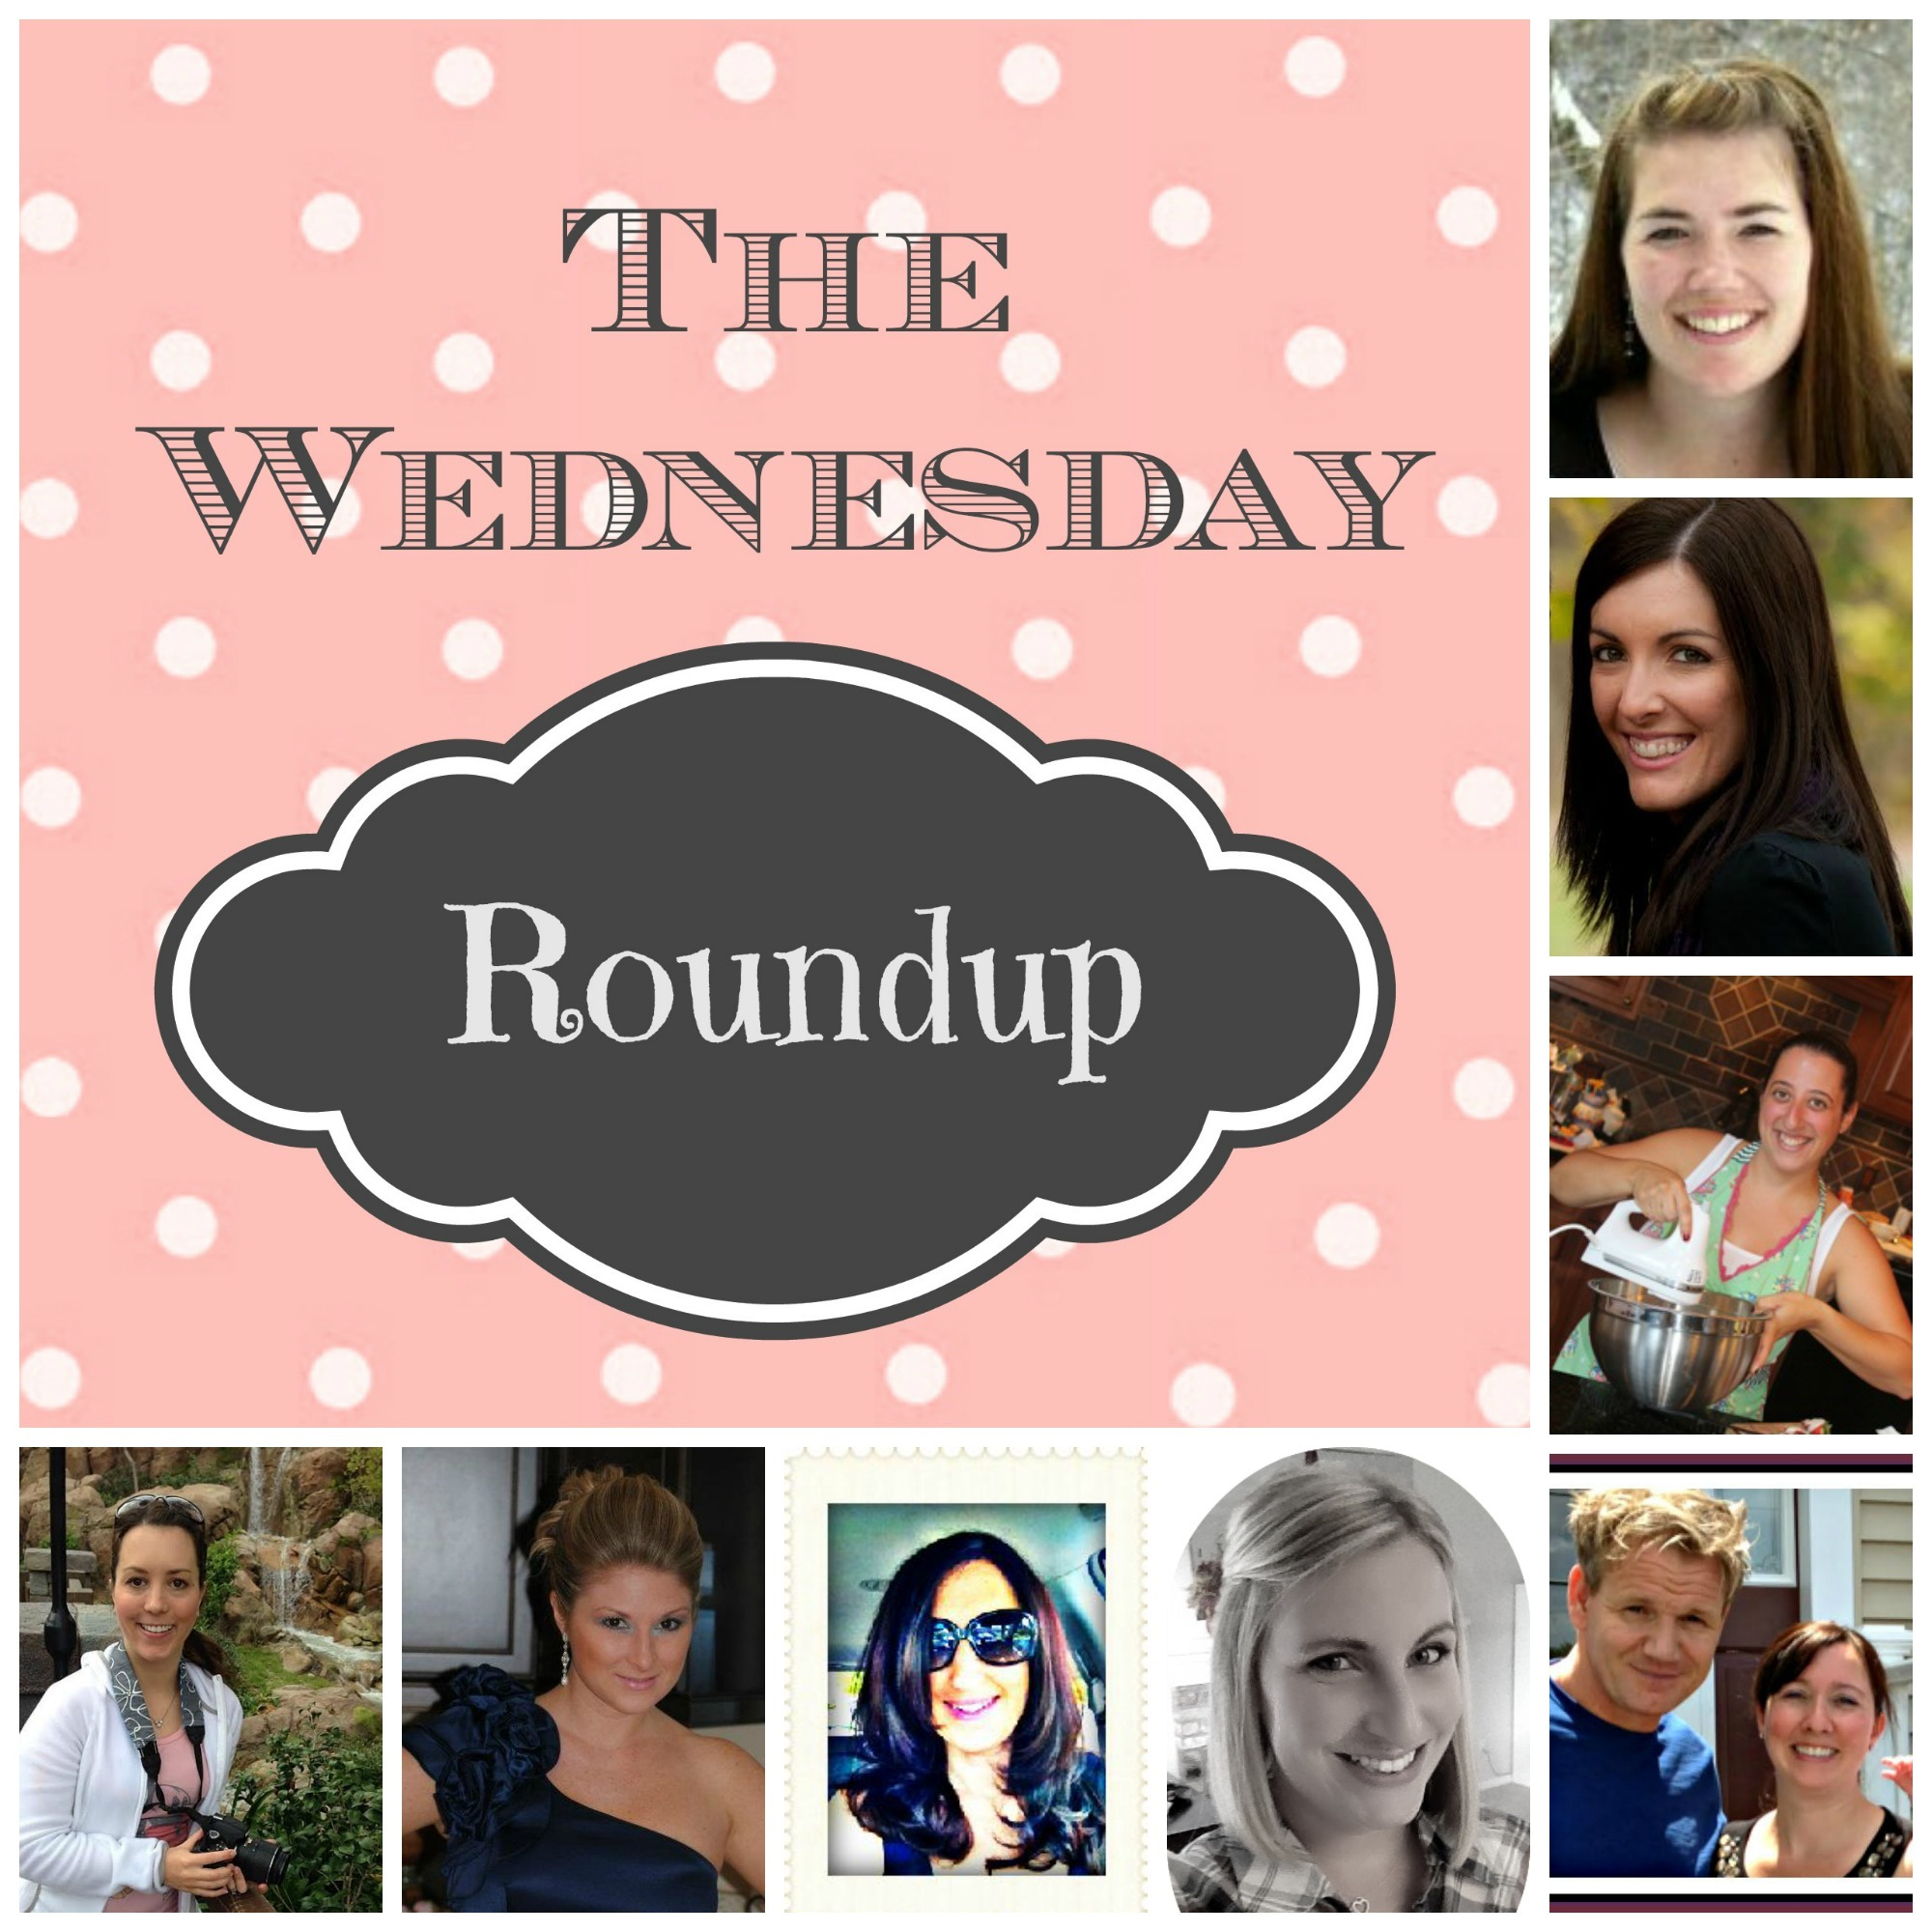 The Wednesday Roundup Week 31 :: A Link Party